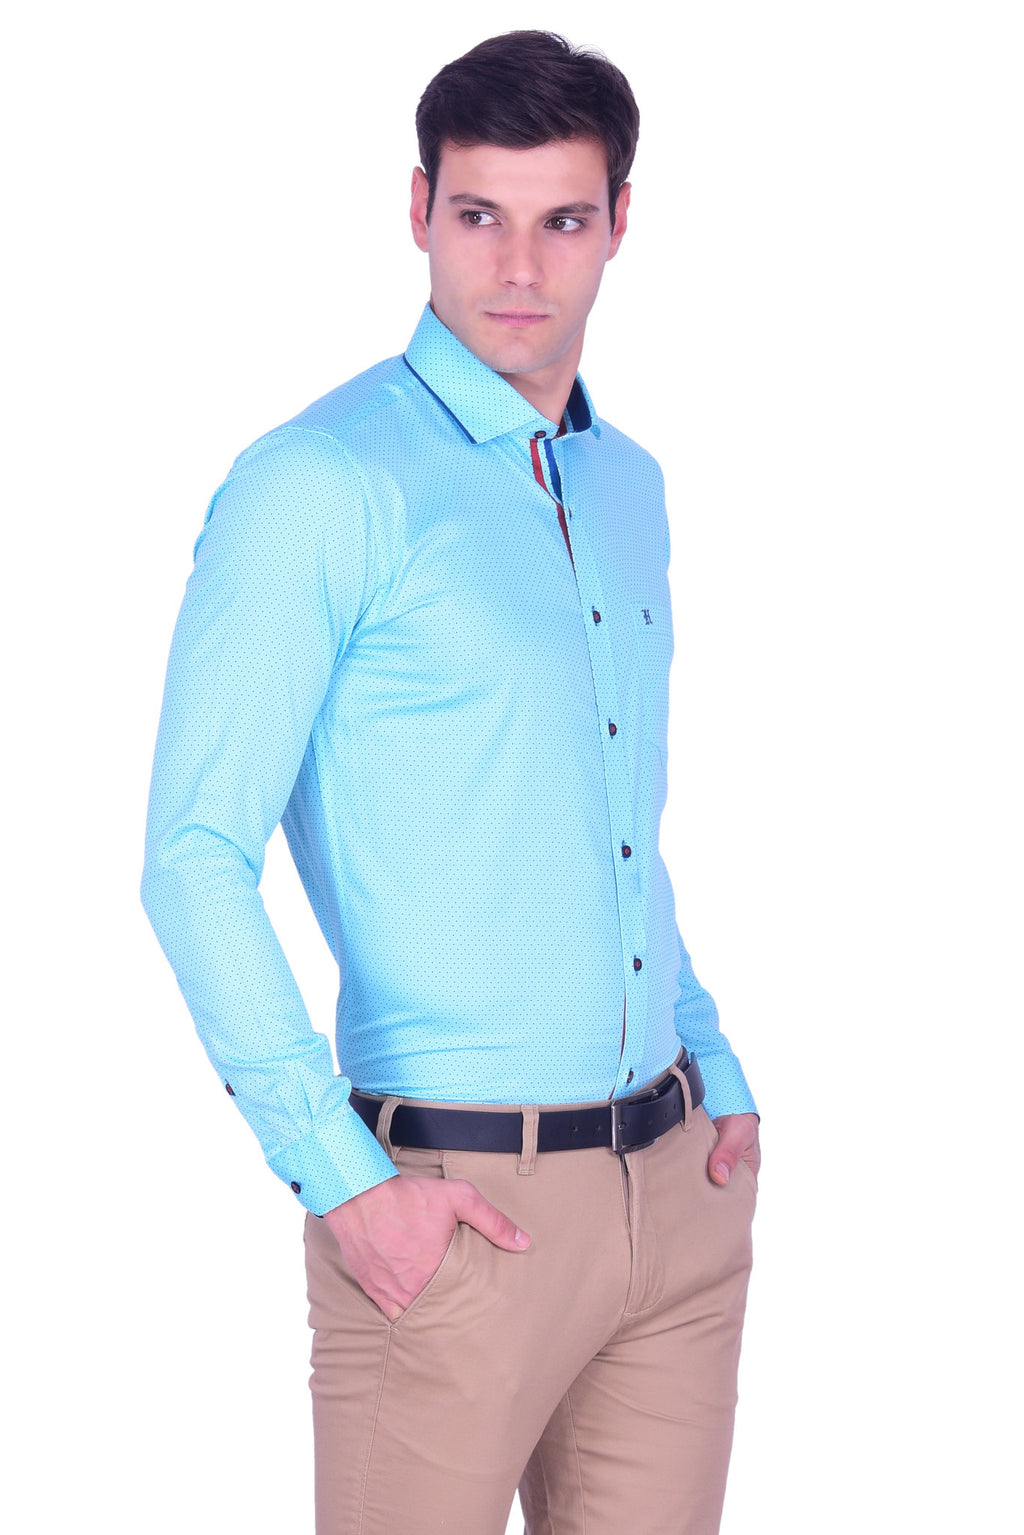 Hoffmen Men's Party Shirt PR6096